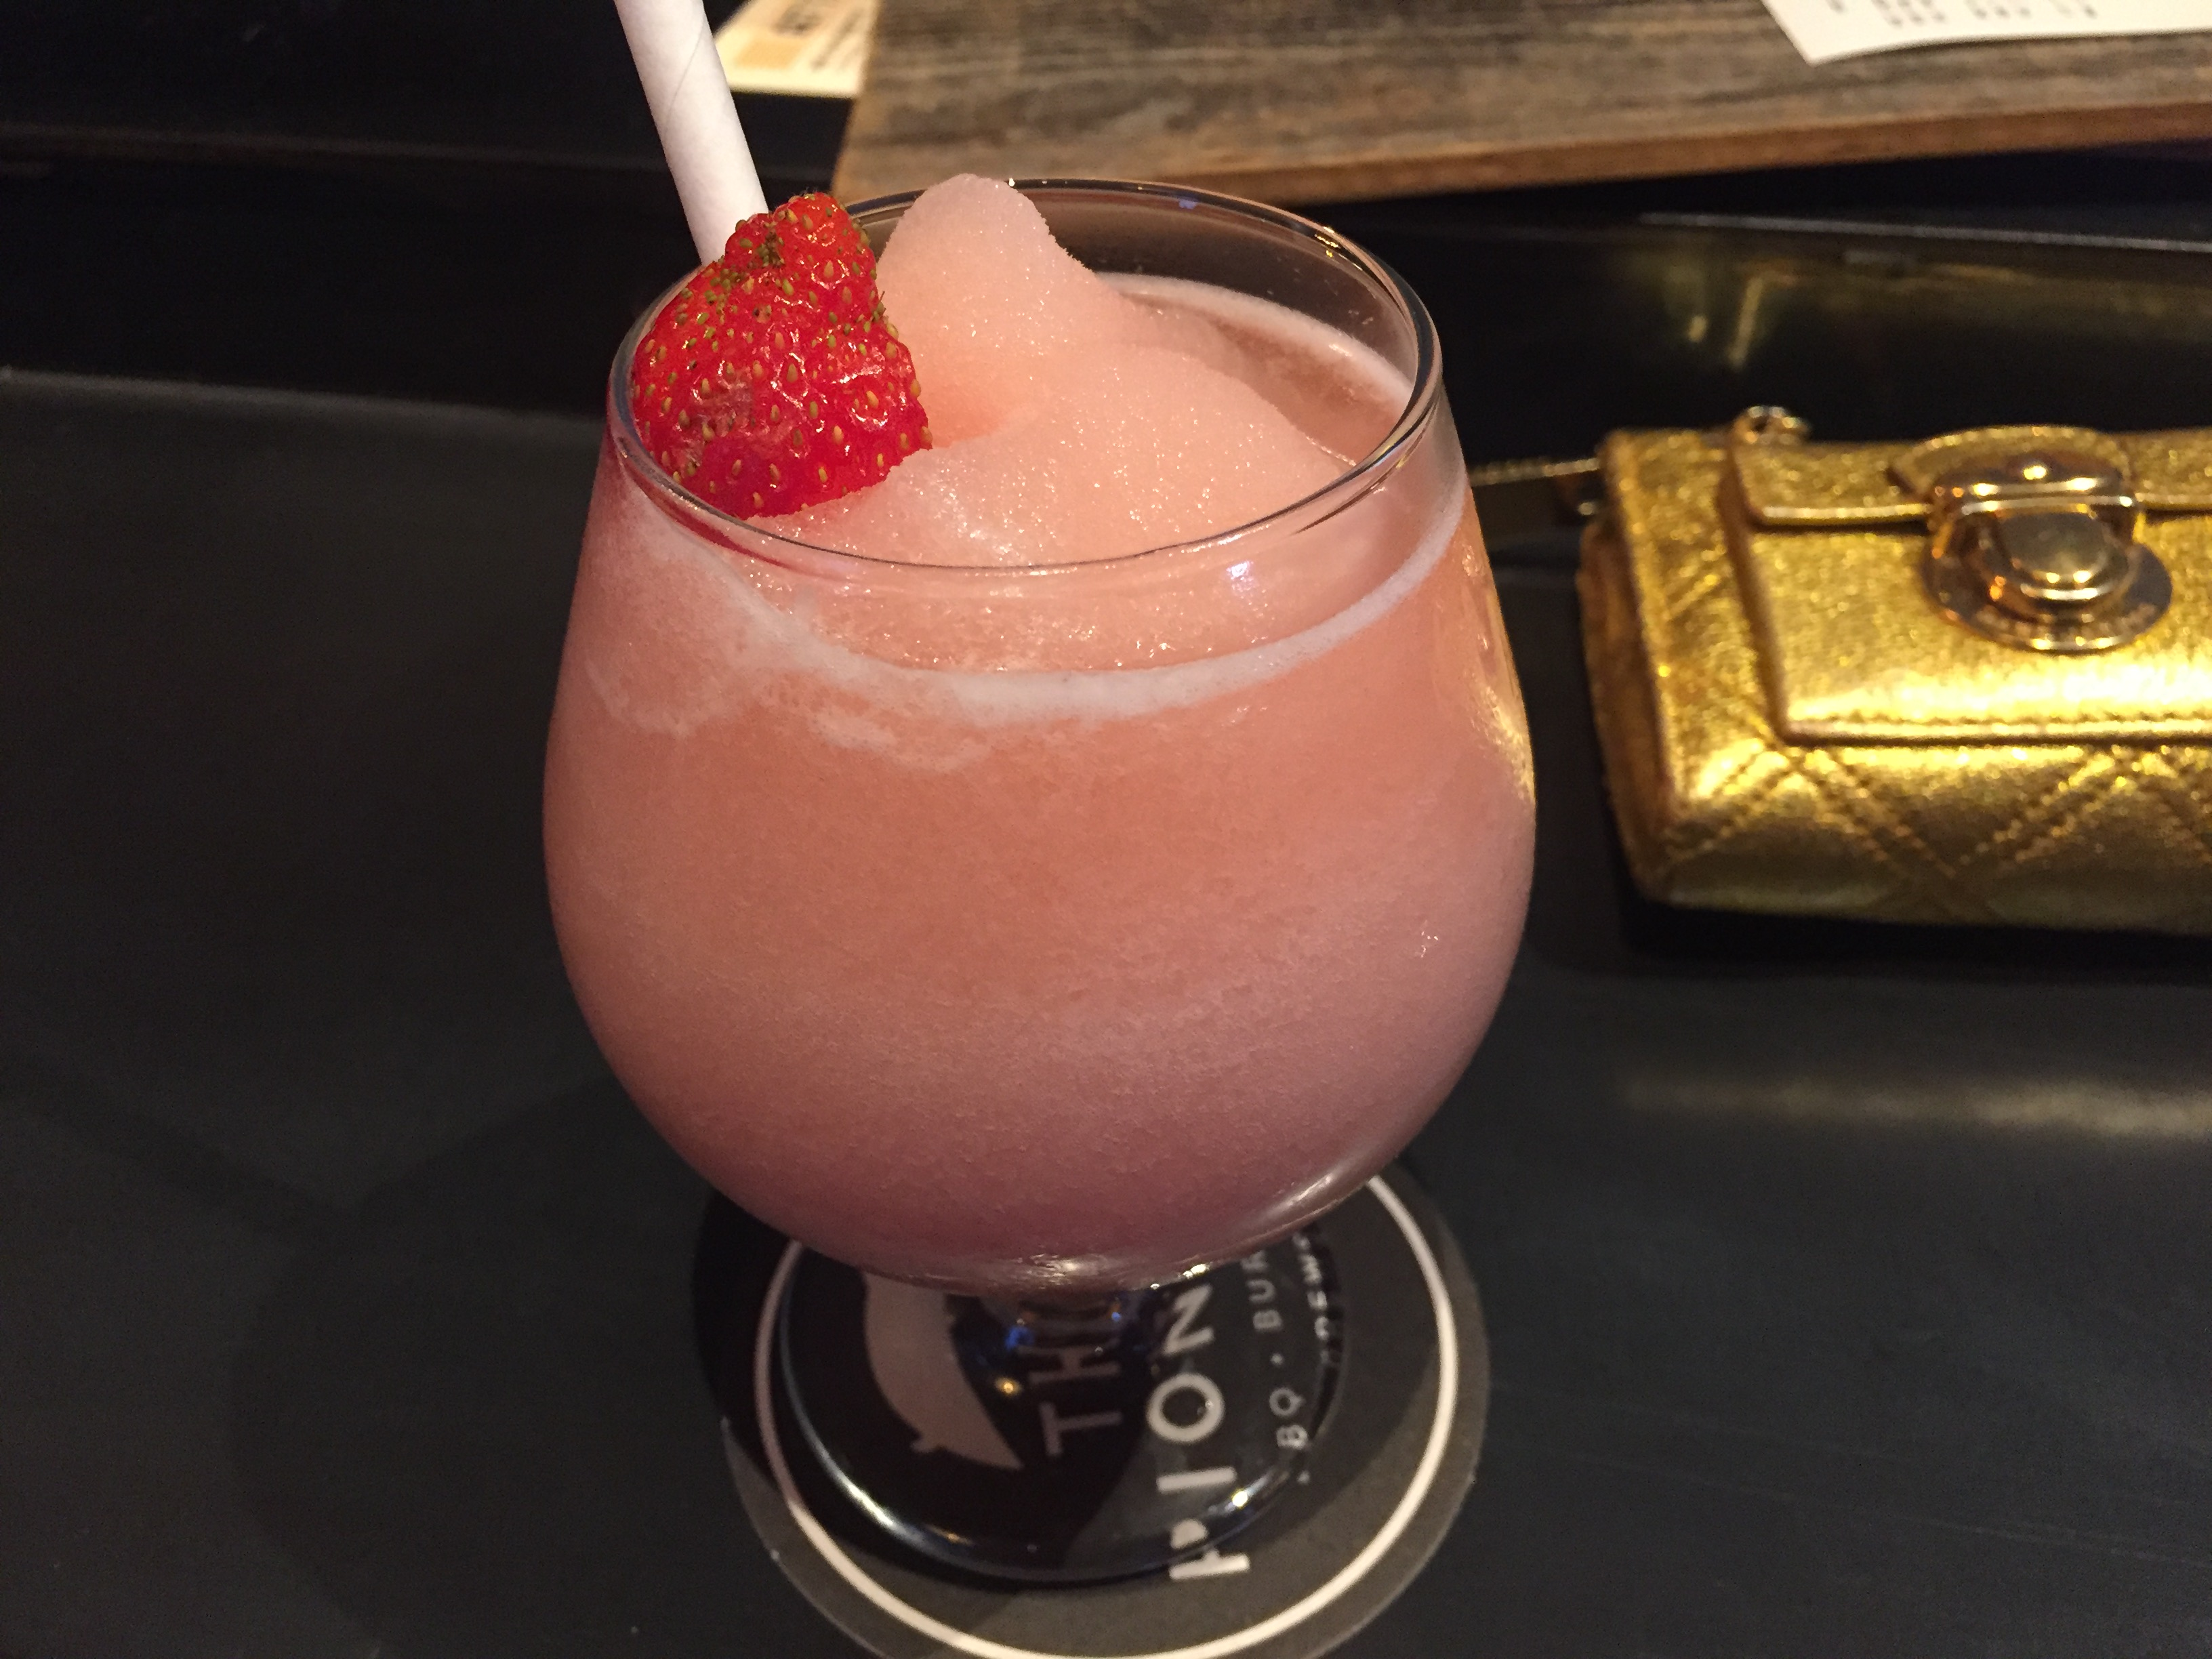 Frontier Frozé, a refreshing and intoxicating grownup Slurpee